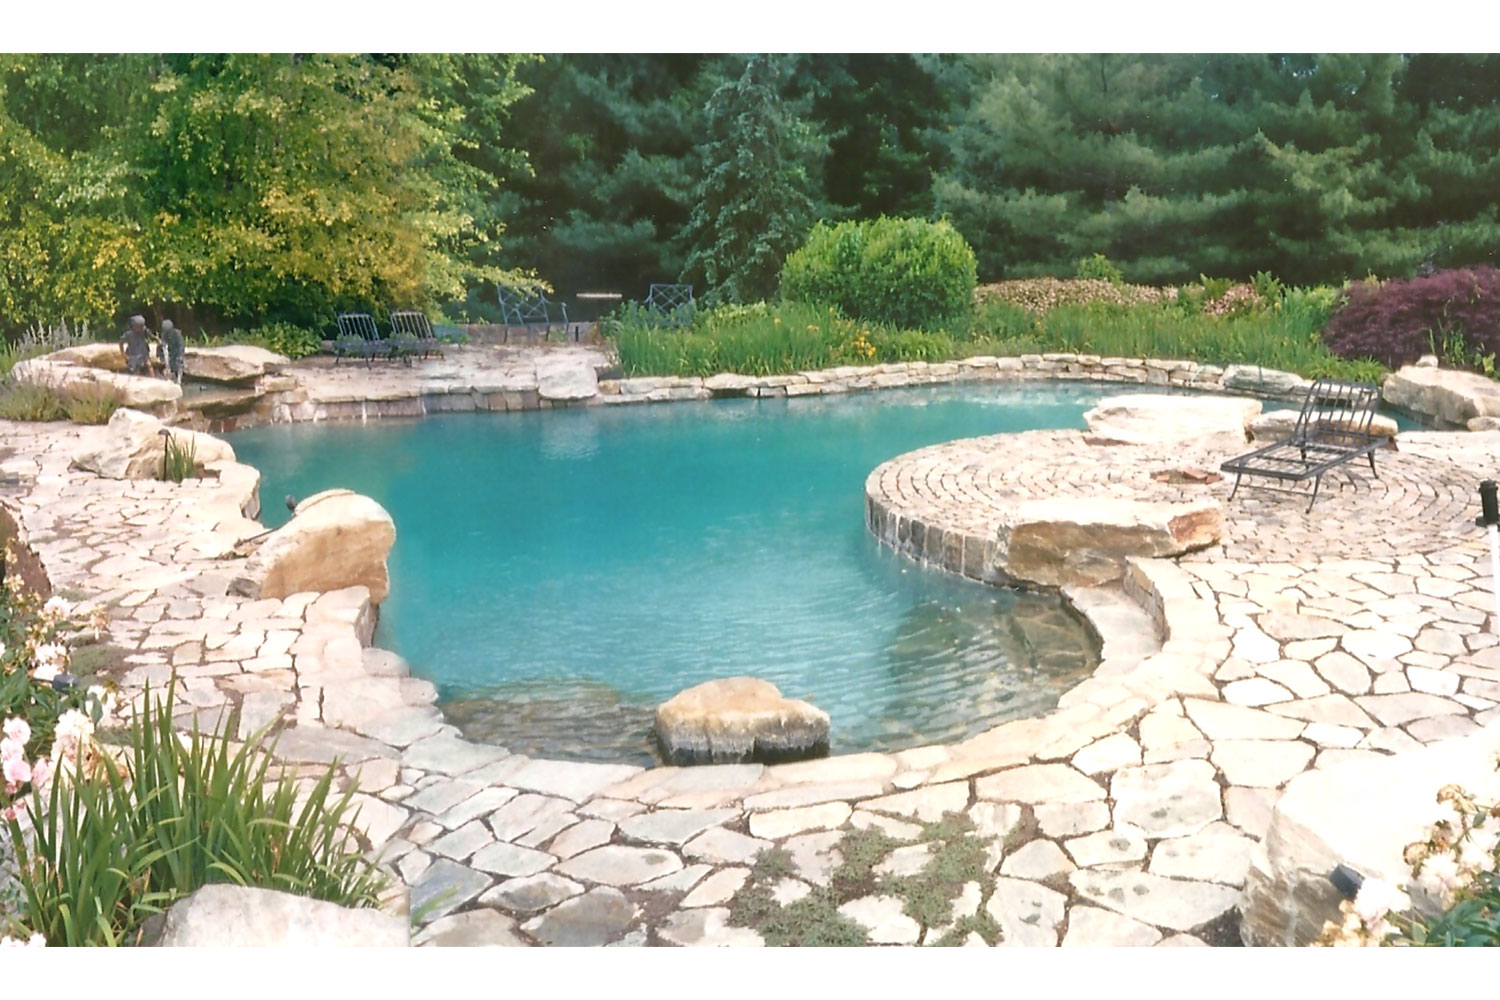 New Pool Construction: Upper Makefield, PA. Designed by renowned local architect!